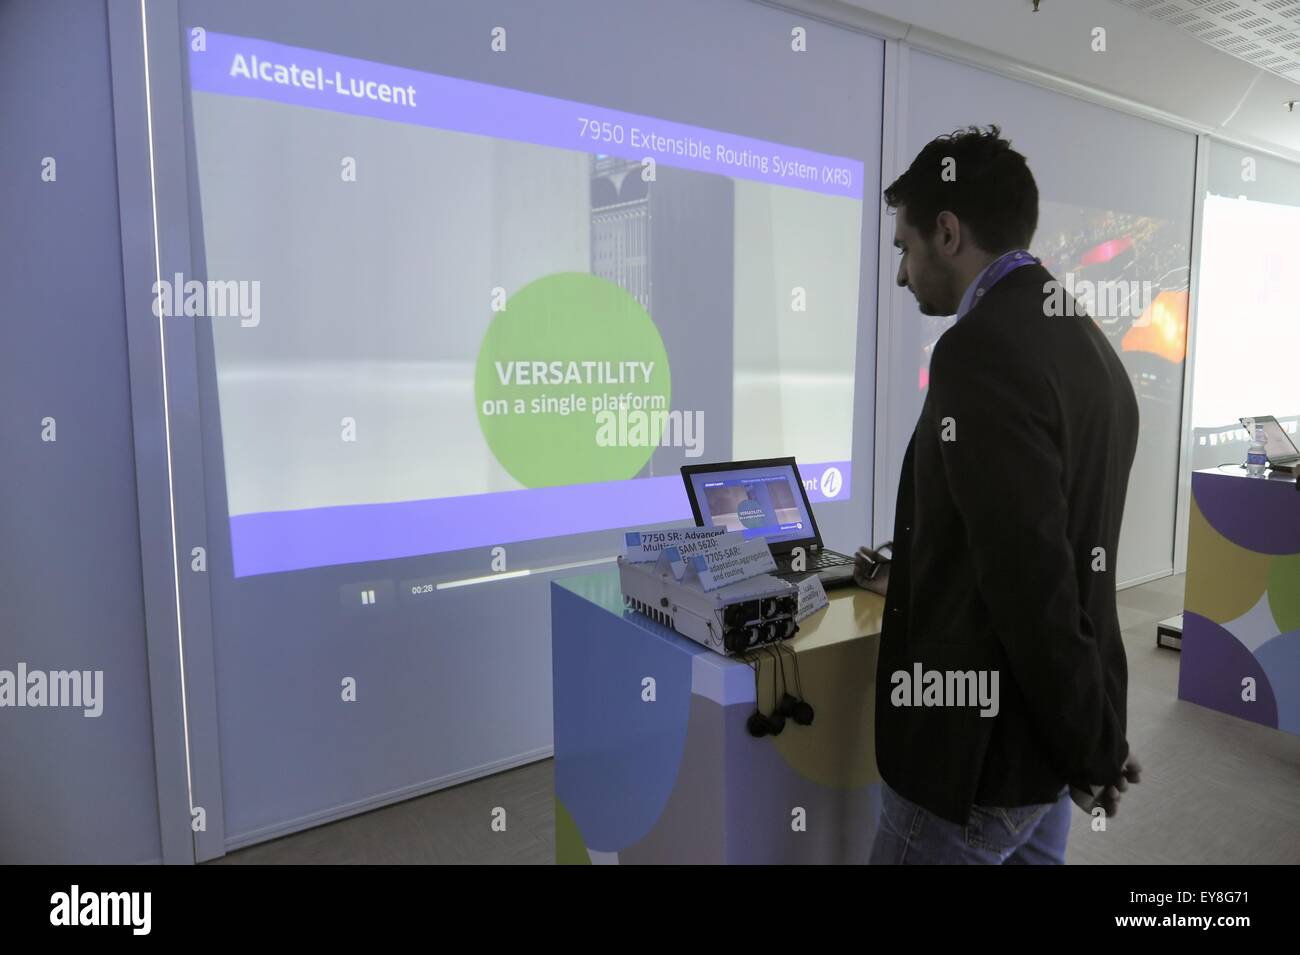 Alcatel Lucent Stock Photos & Alcatel Lucent Stock Images - Alamy